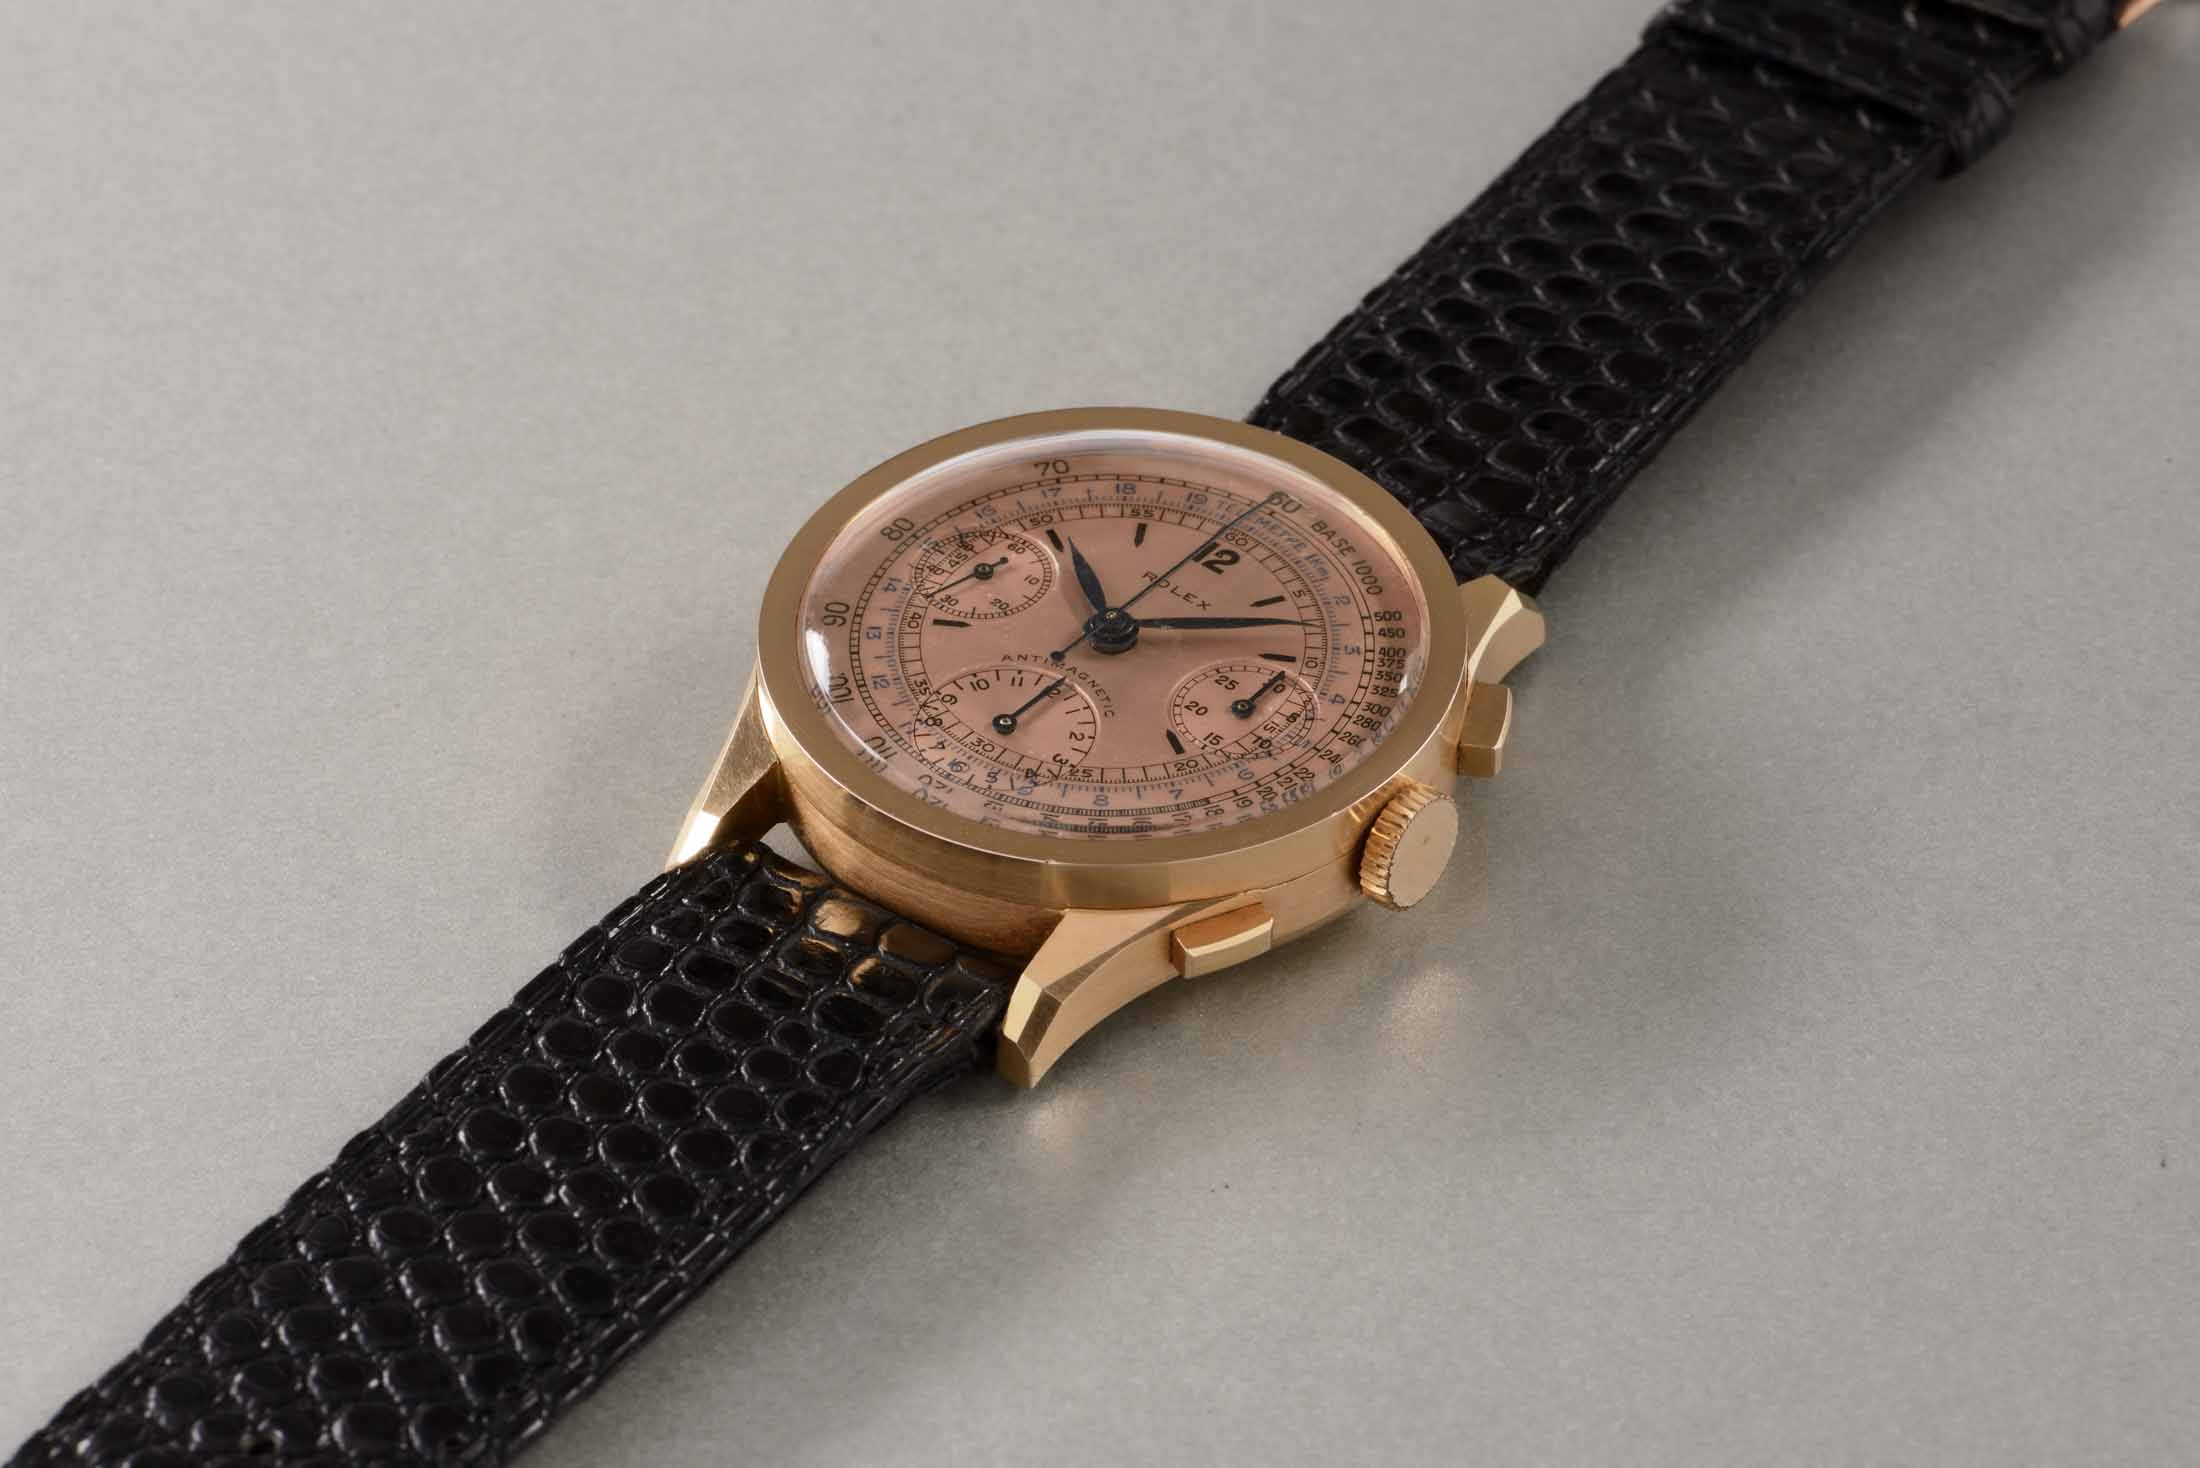 Rolex Extremely Rare Pink-Gold Antimagnetic Chronograph Wristwatch With Salmon Colored Dial